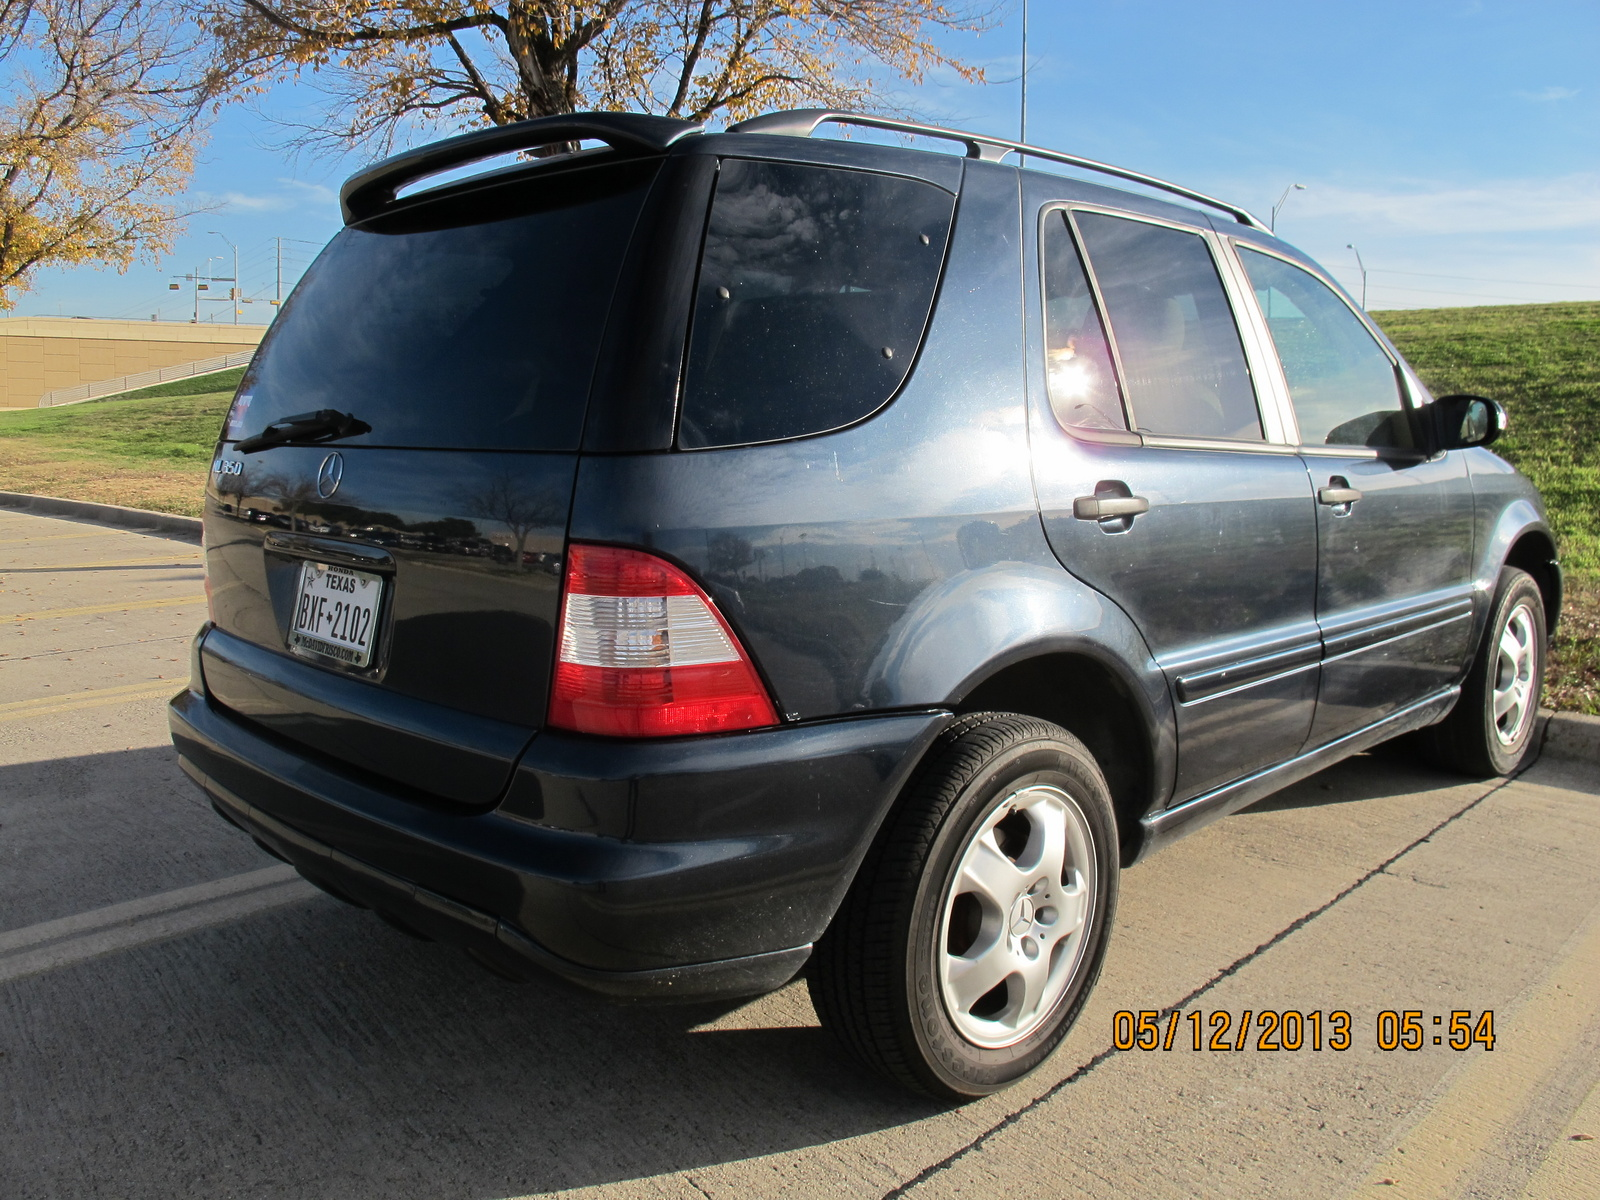 2003 mercedes benz m class pictures cargurus for 2006 mercedes benz ml350 price